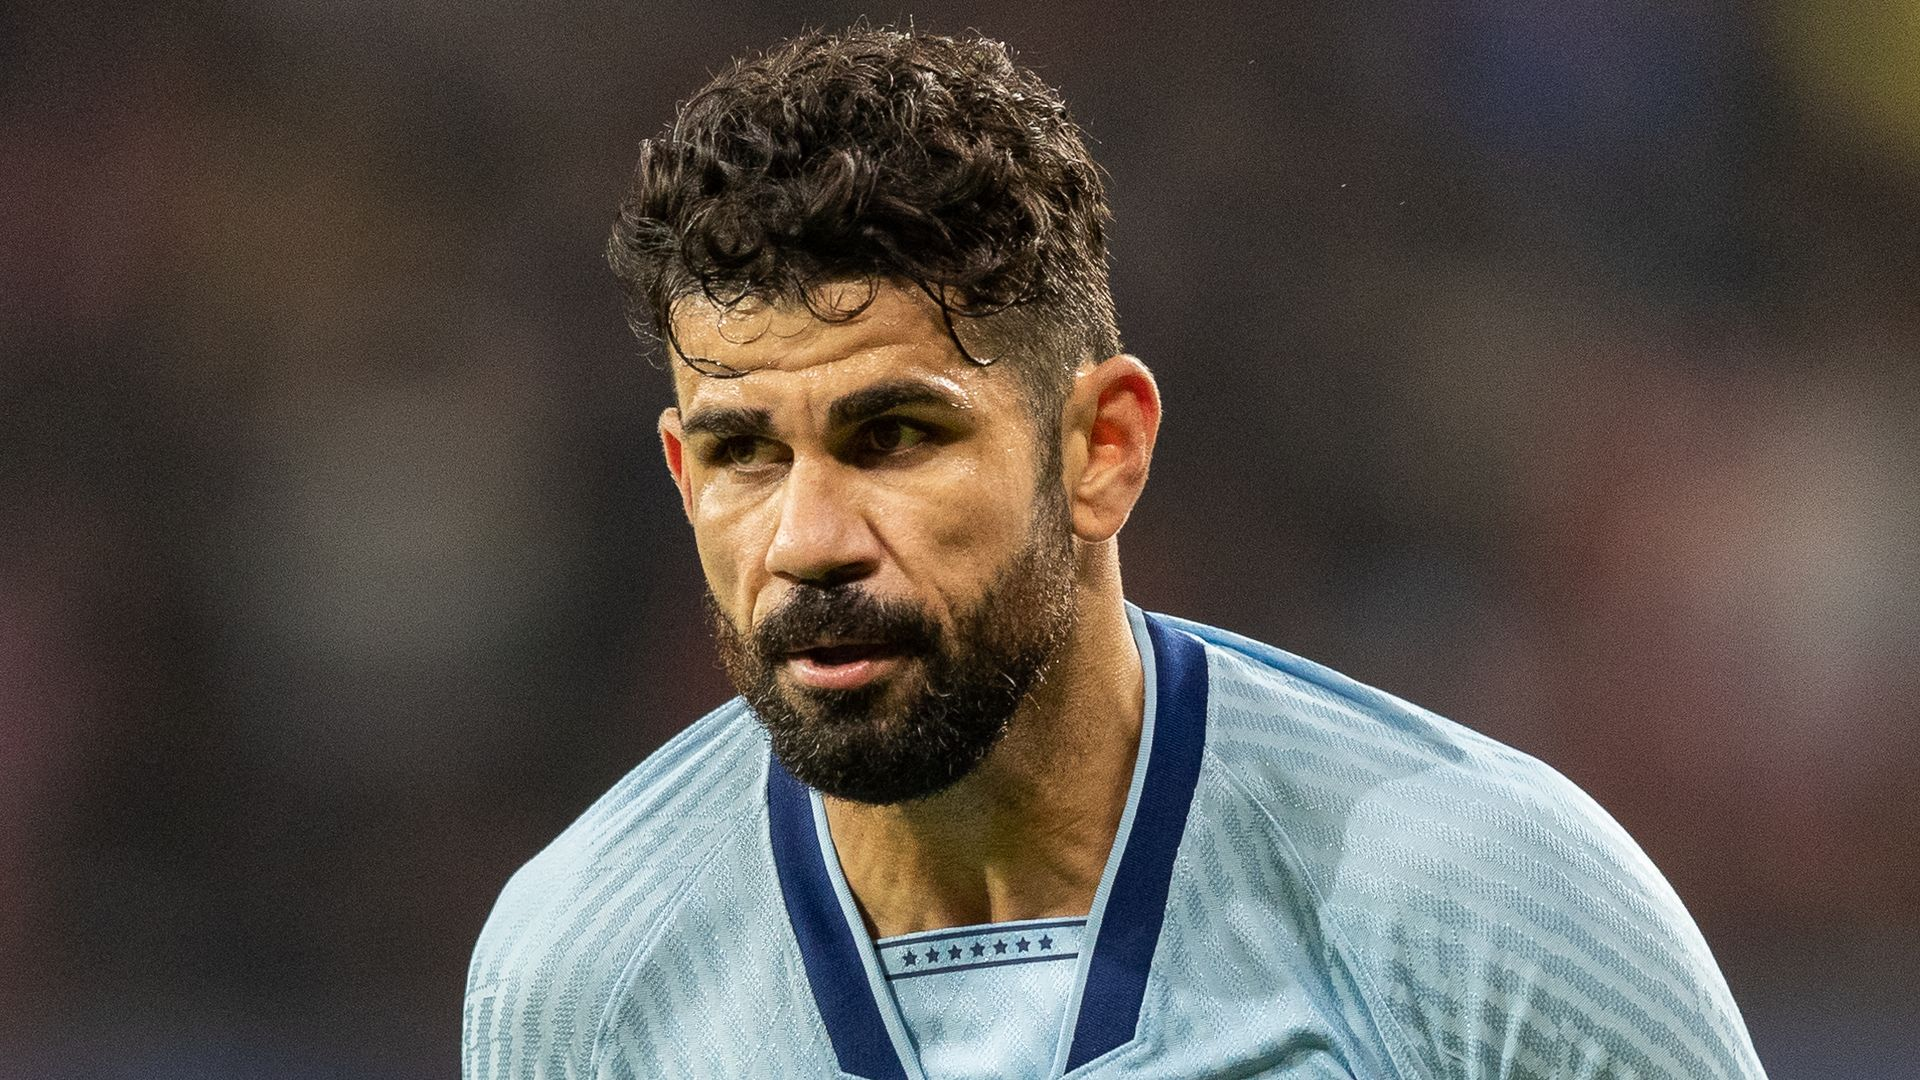 Costa appears in court to face tax fraud trial